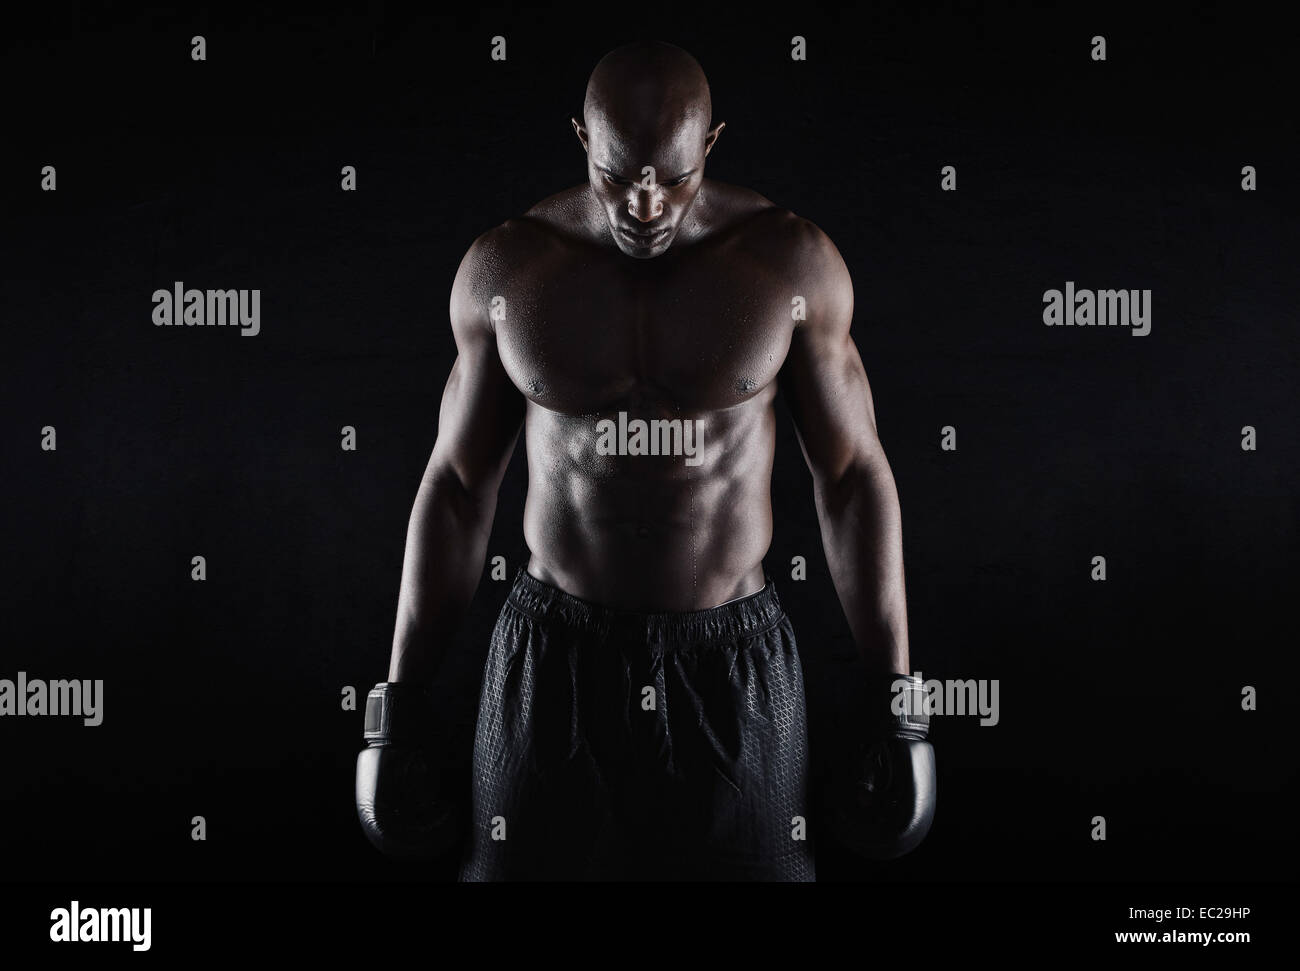 9f562739d18e Portrait of fit young man wearing boxing gloves looking down on black  background. Professional African